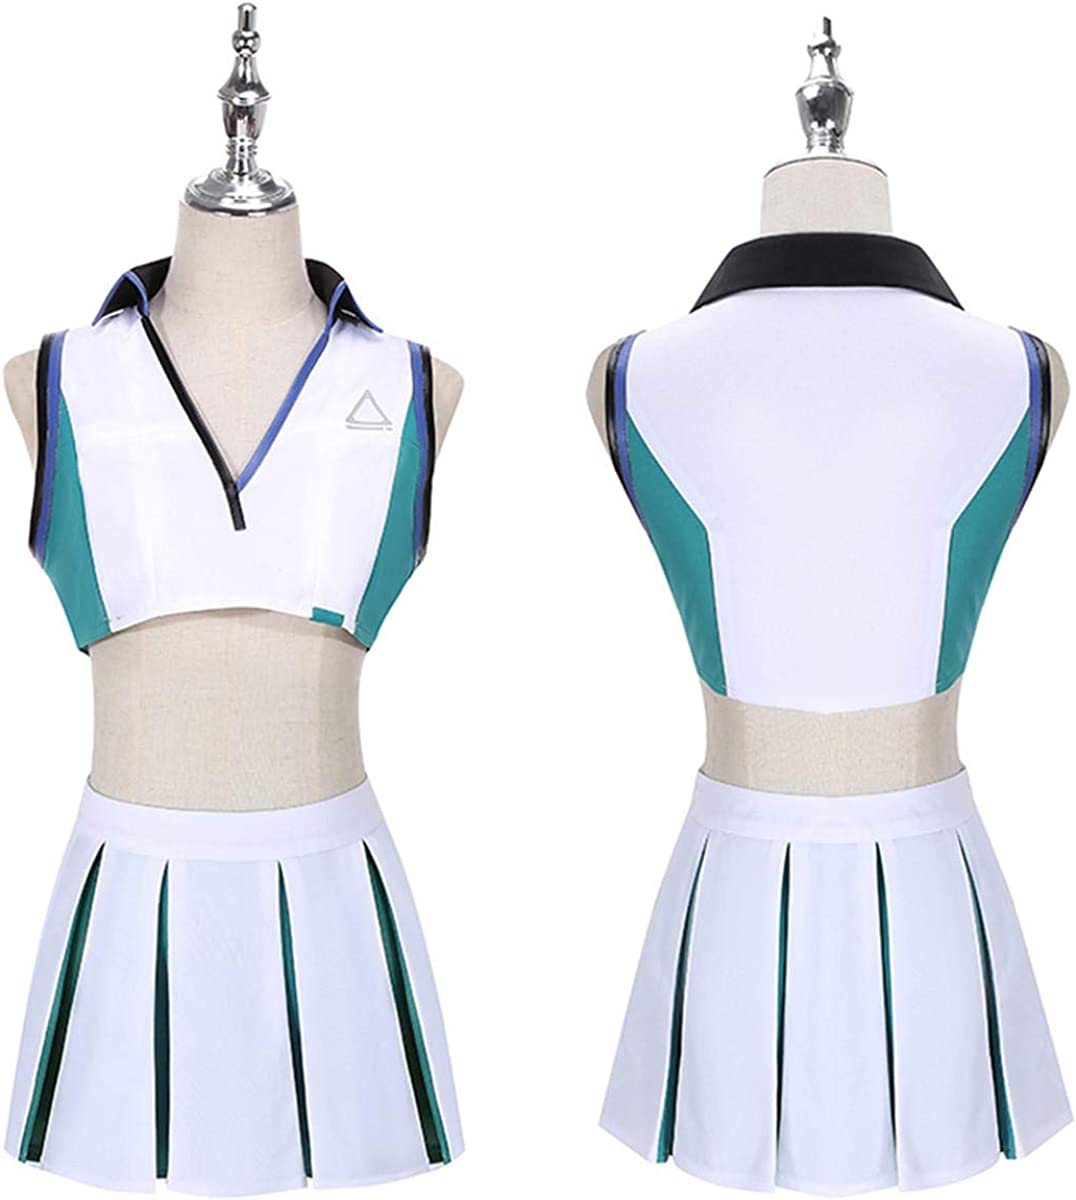 Amazon.com: MIAOCOS Bremerton Dress Cosplay Azur Lane Costume SSN 698 USS Women Summer Outfit with Necklace Wristbands: Clothing